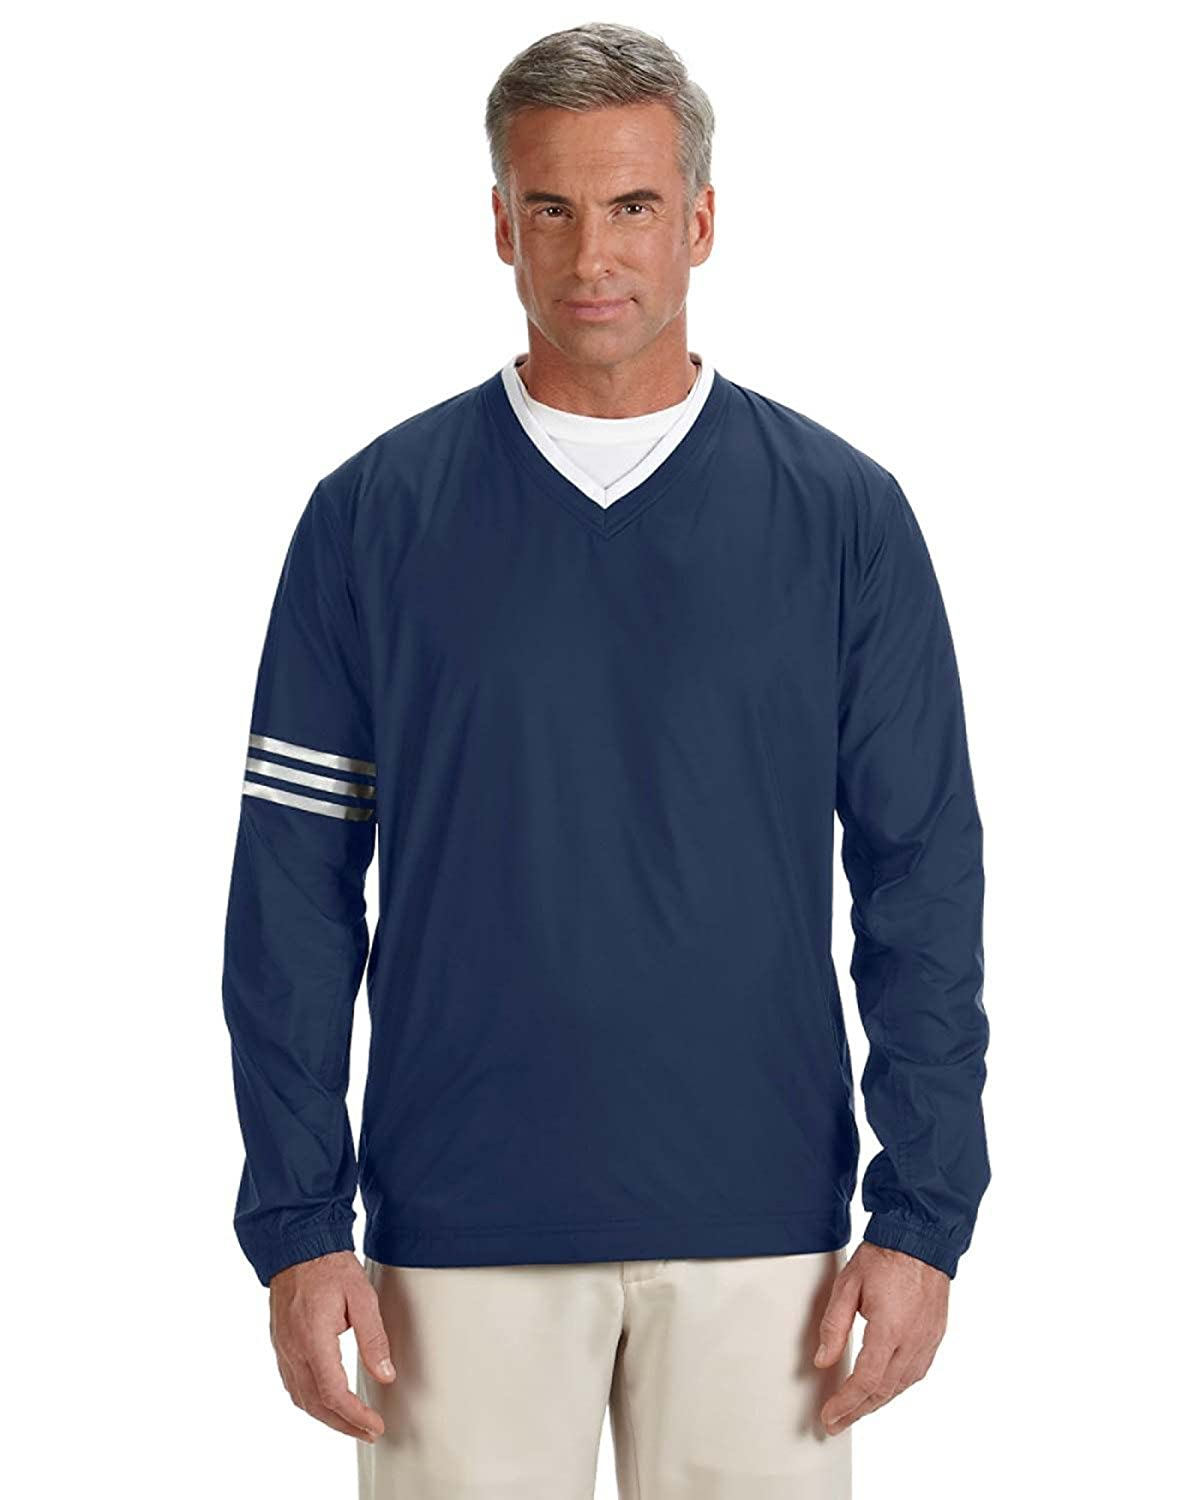 Navy  Navy 3XL adidas Men's Climalite color Block V-Neck Windshirt